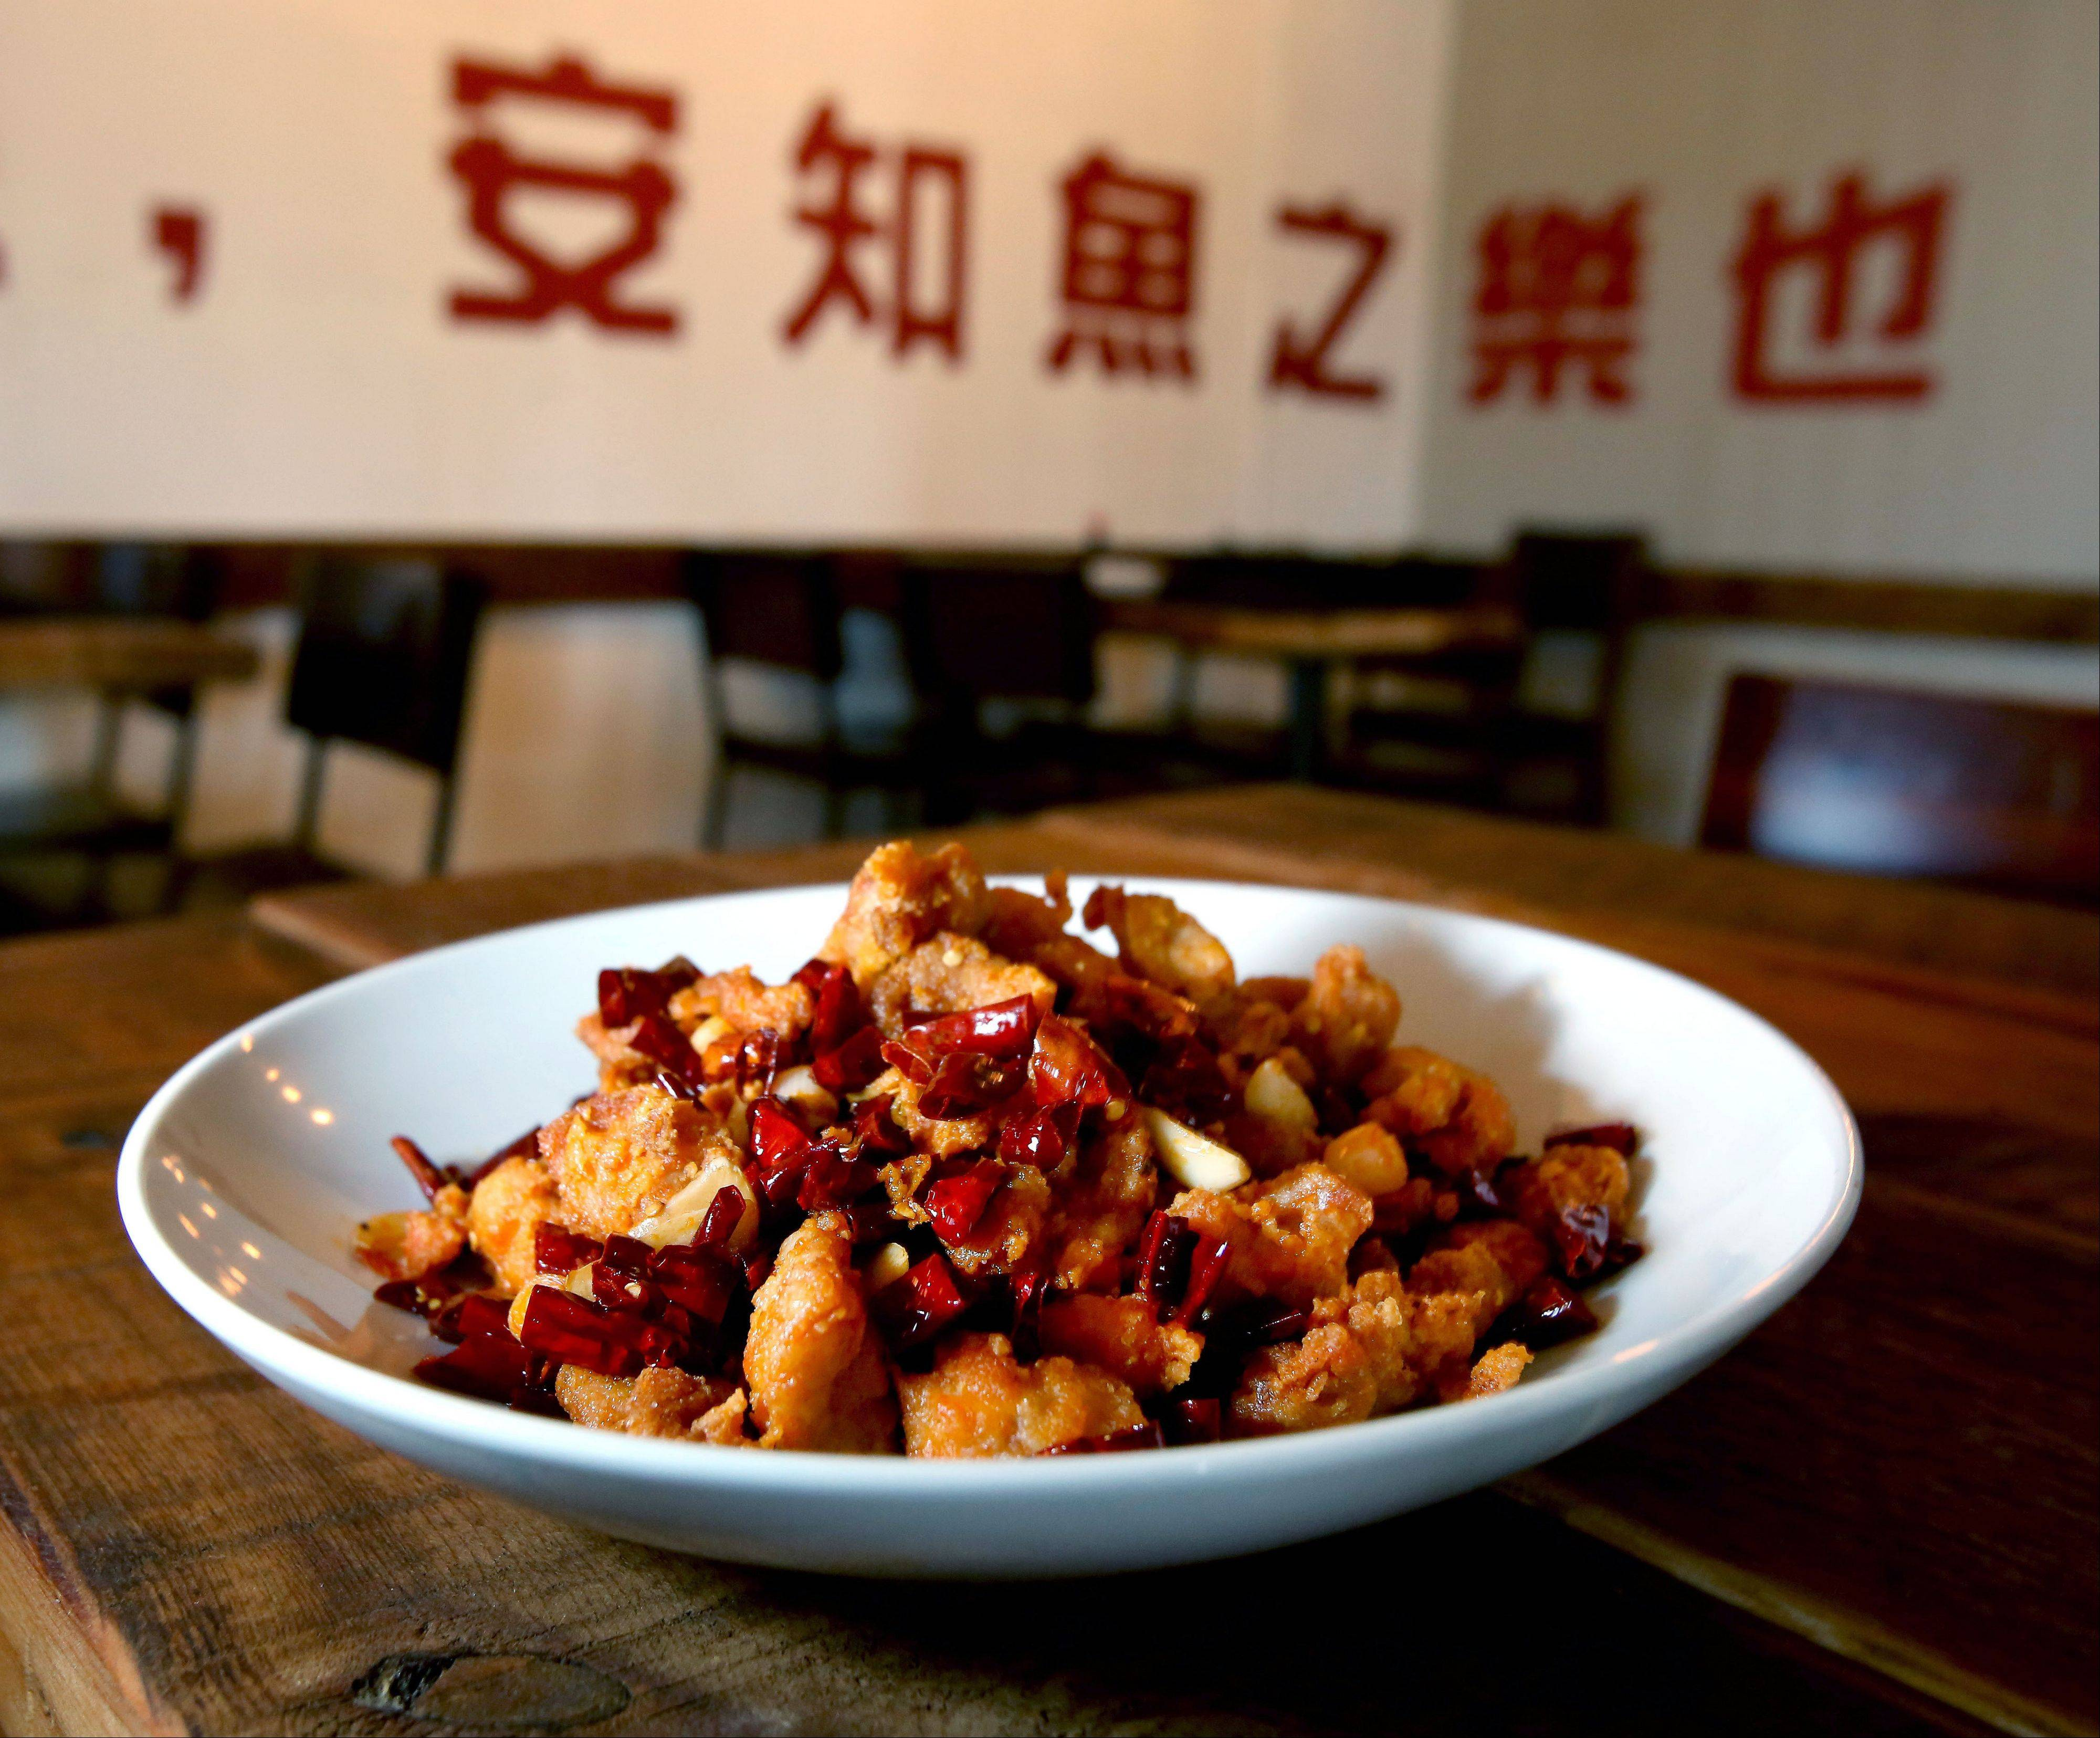 8,000 Miles' dried chili chicken gets its kick from blackened chilis, chili oil and garlic.